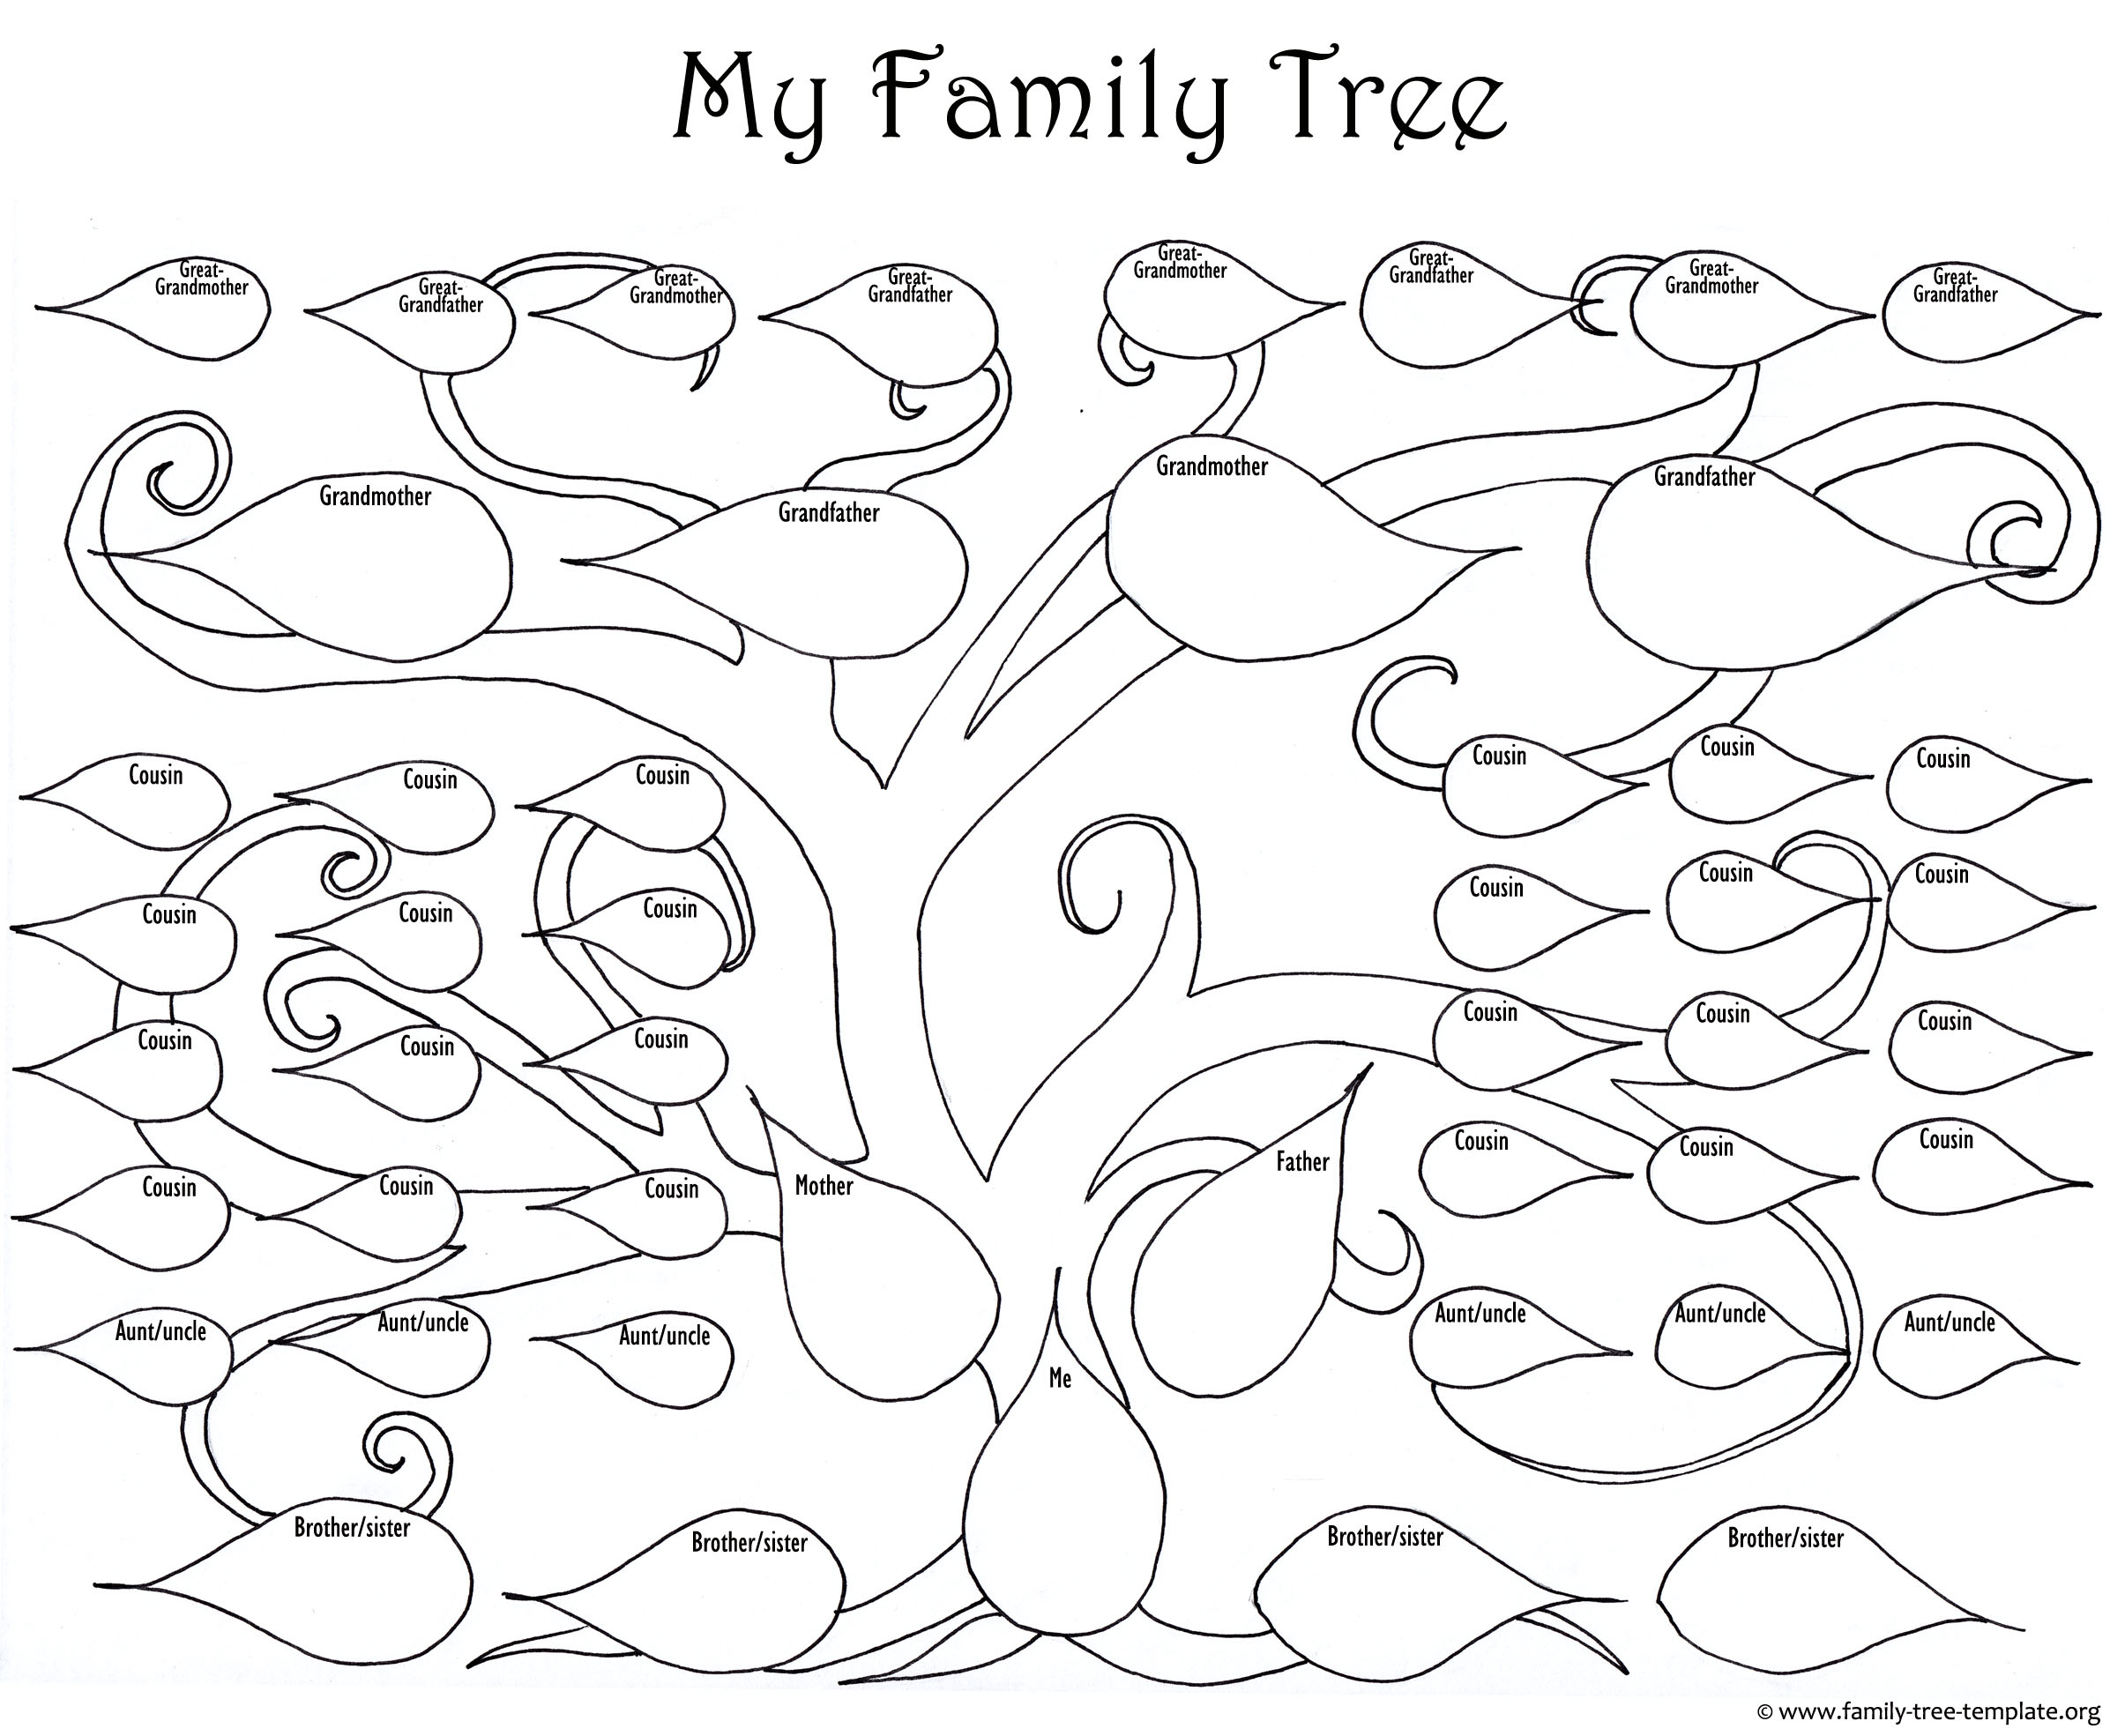 how to draw a family tree diagram 5 pin stecker printable blank make your kids genealogy